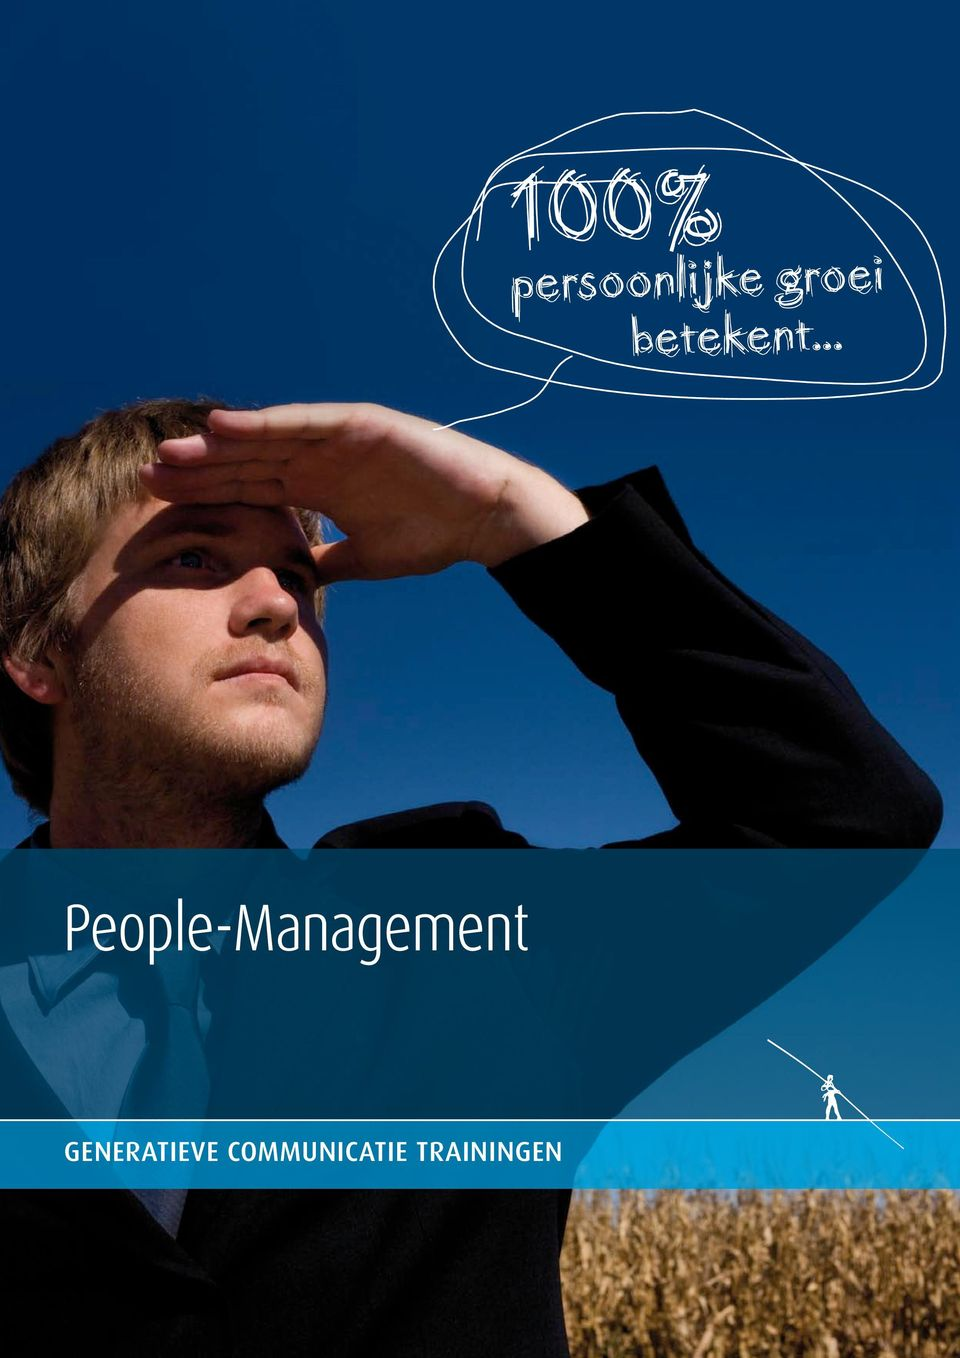 .. People-Management